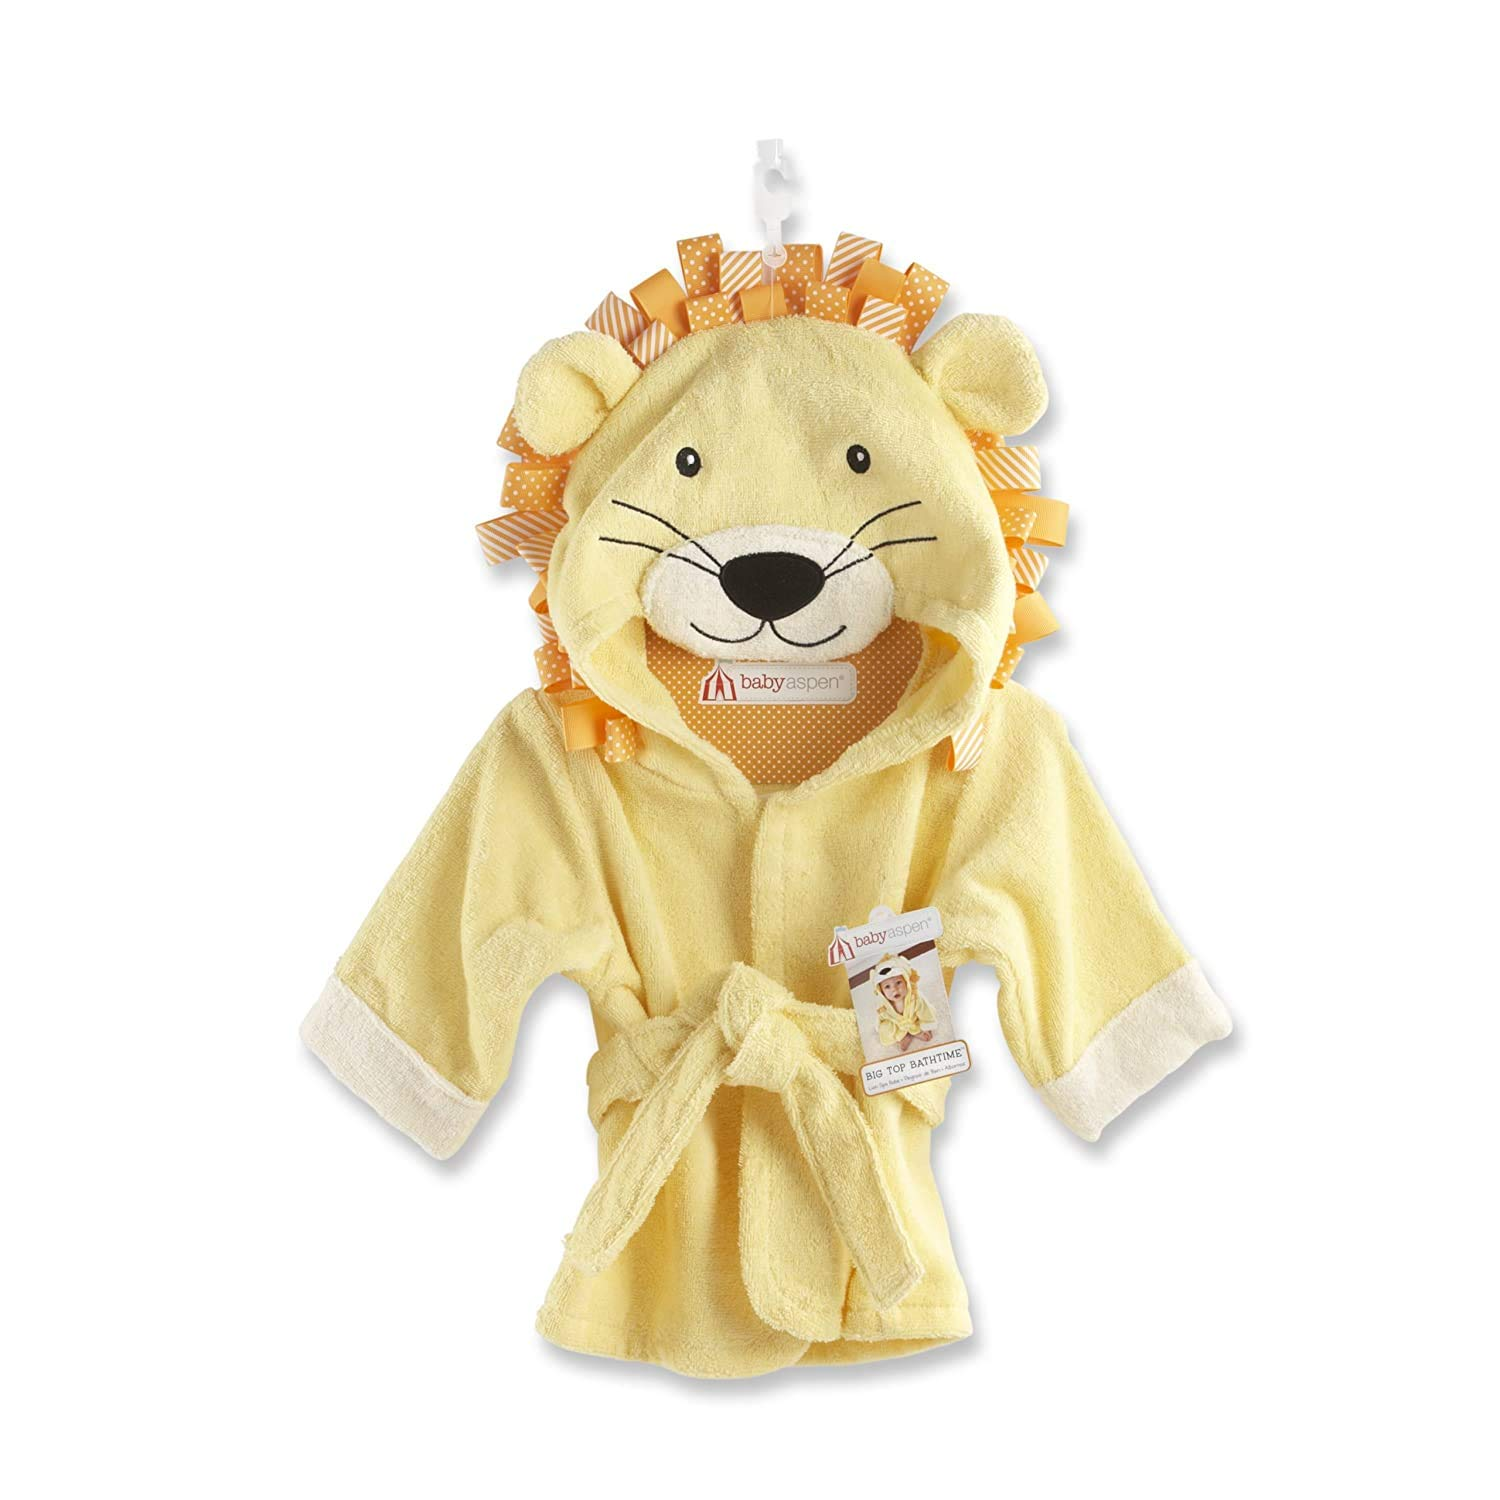 Baby Aspen, Big Top Bath Time Lion Hooded Spa Robe, Yellow, 7-7